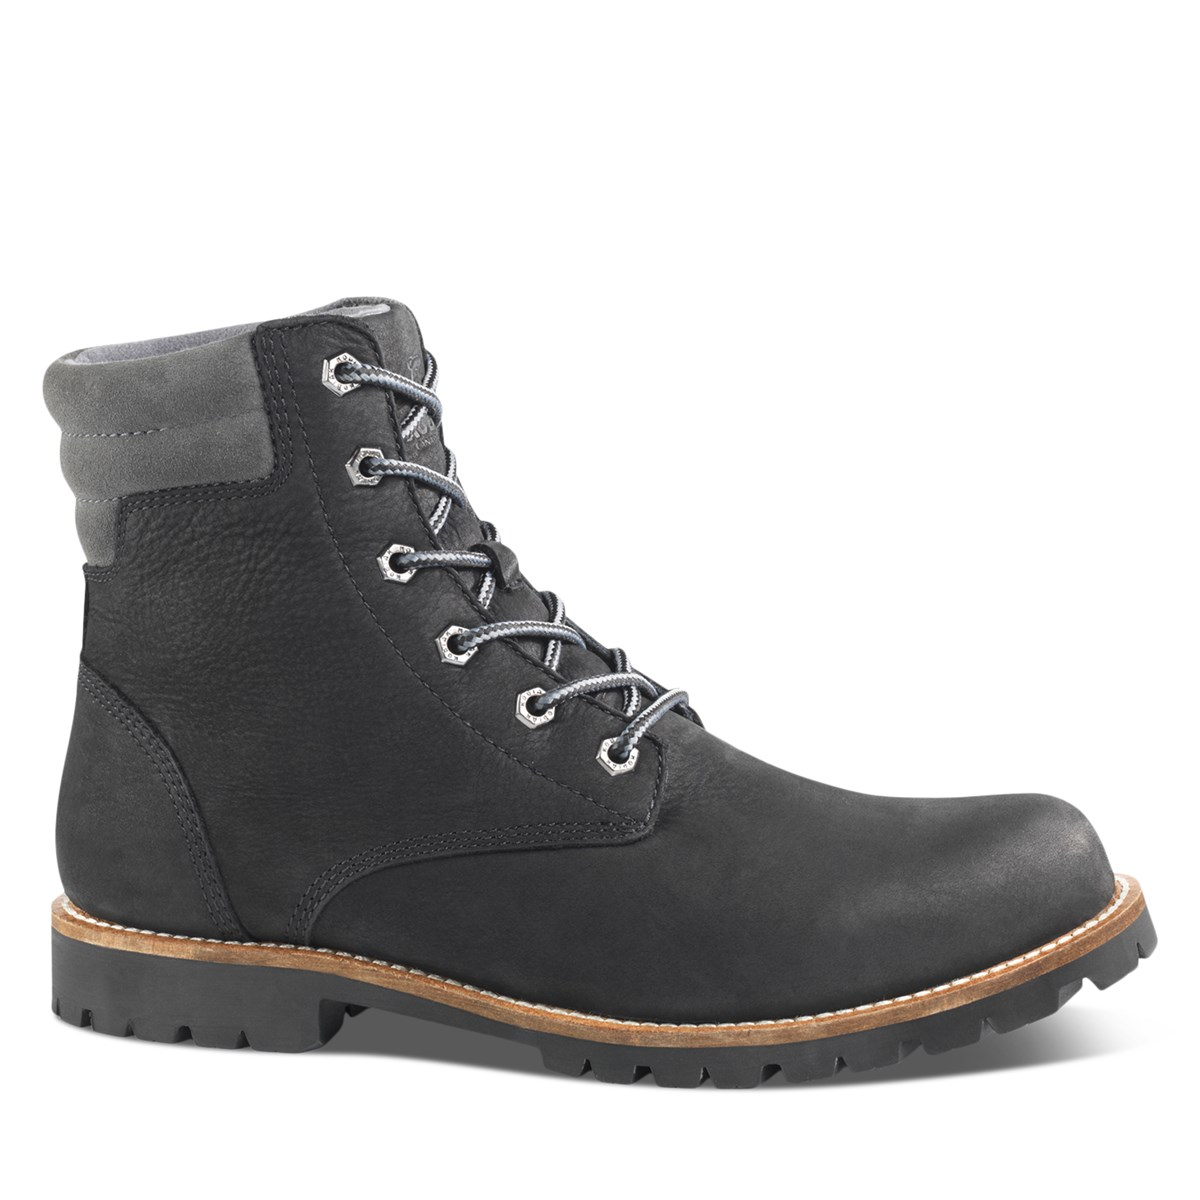 Men's Magog Hiking Boots in Black